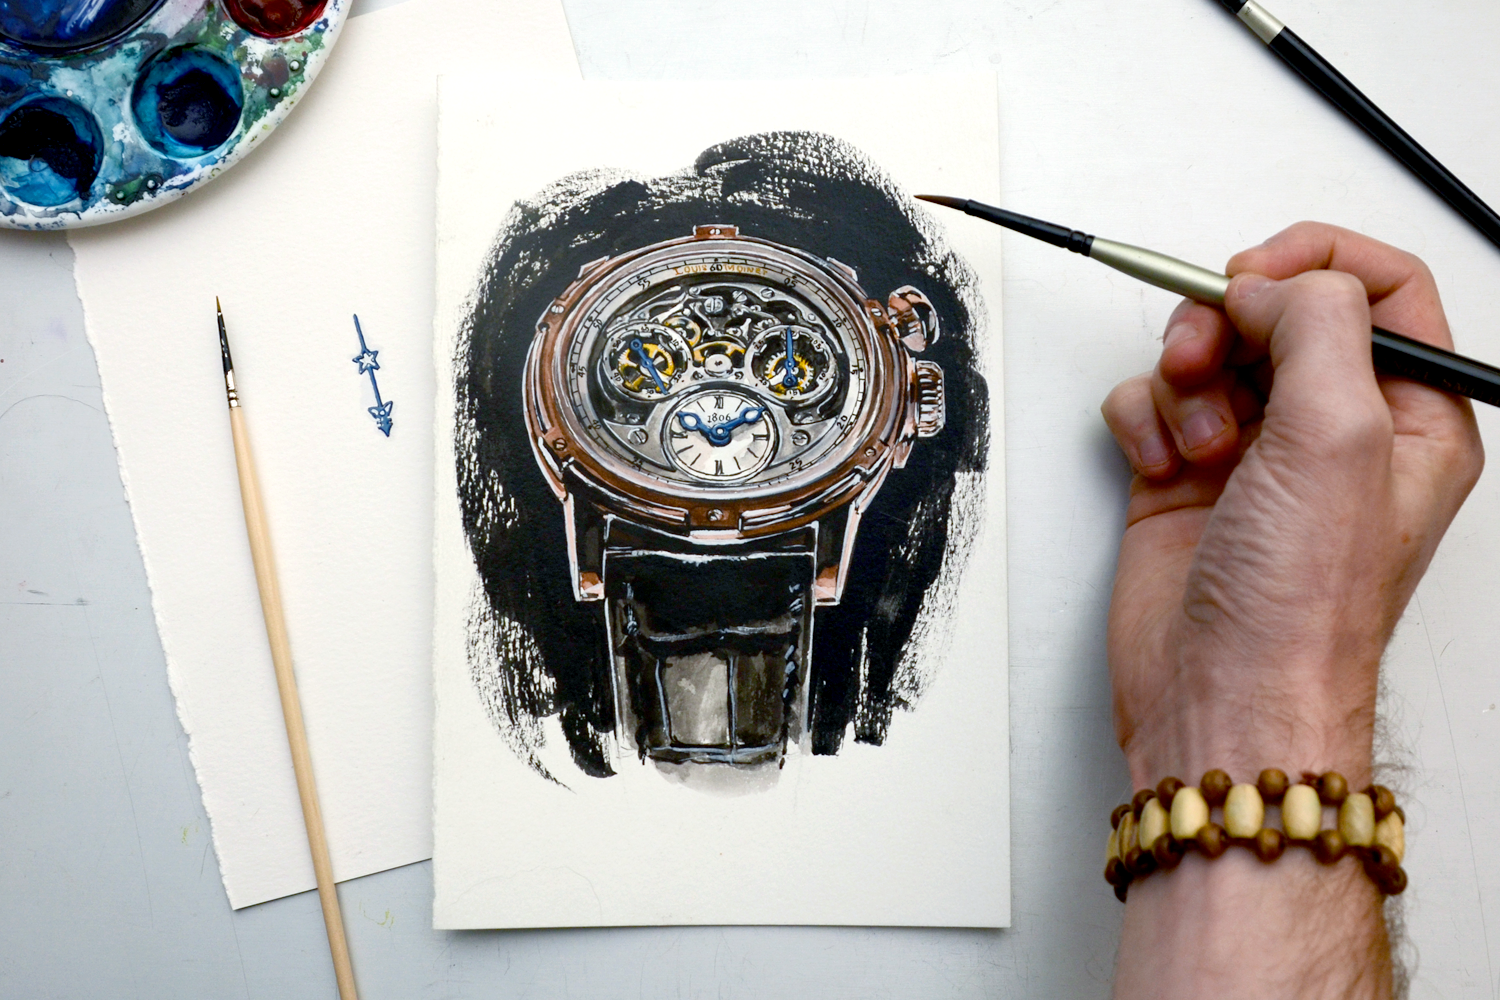 Memoris Chronograph painting